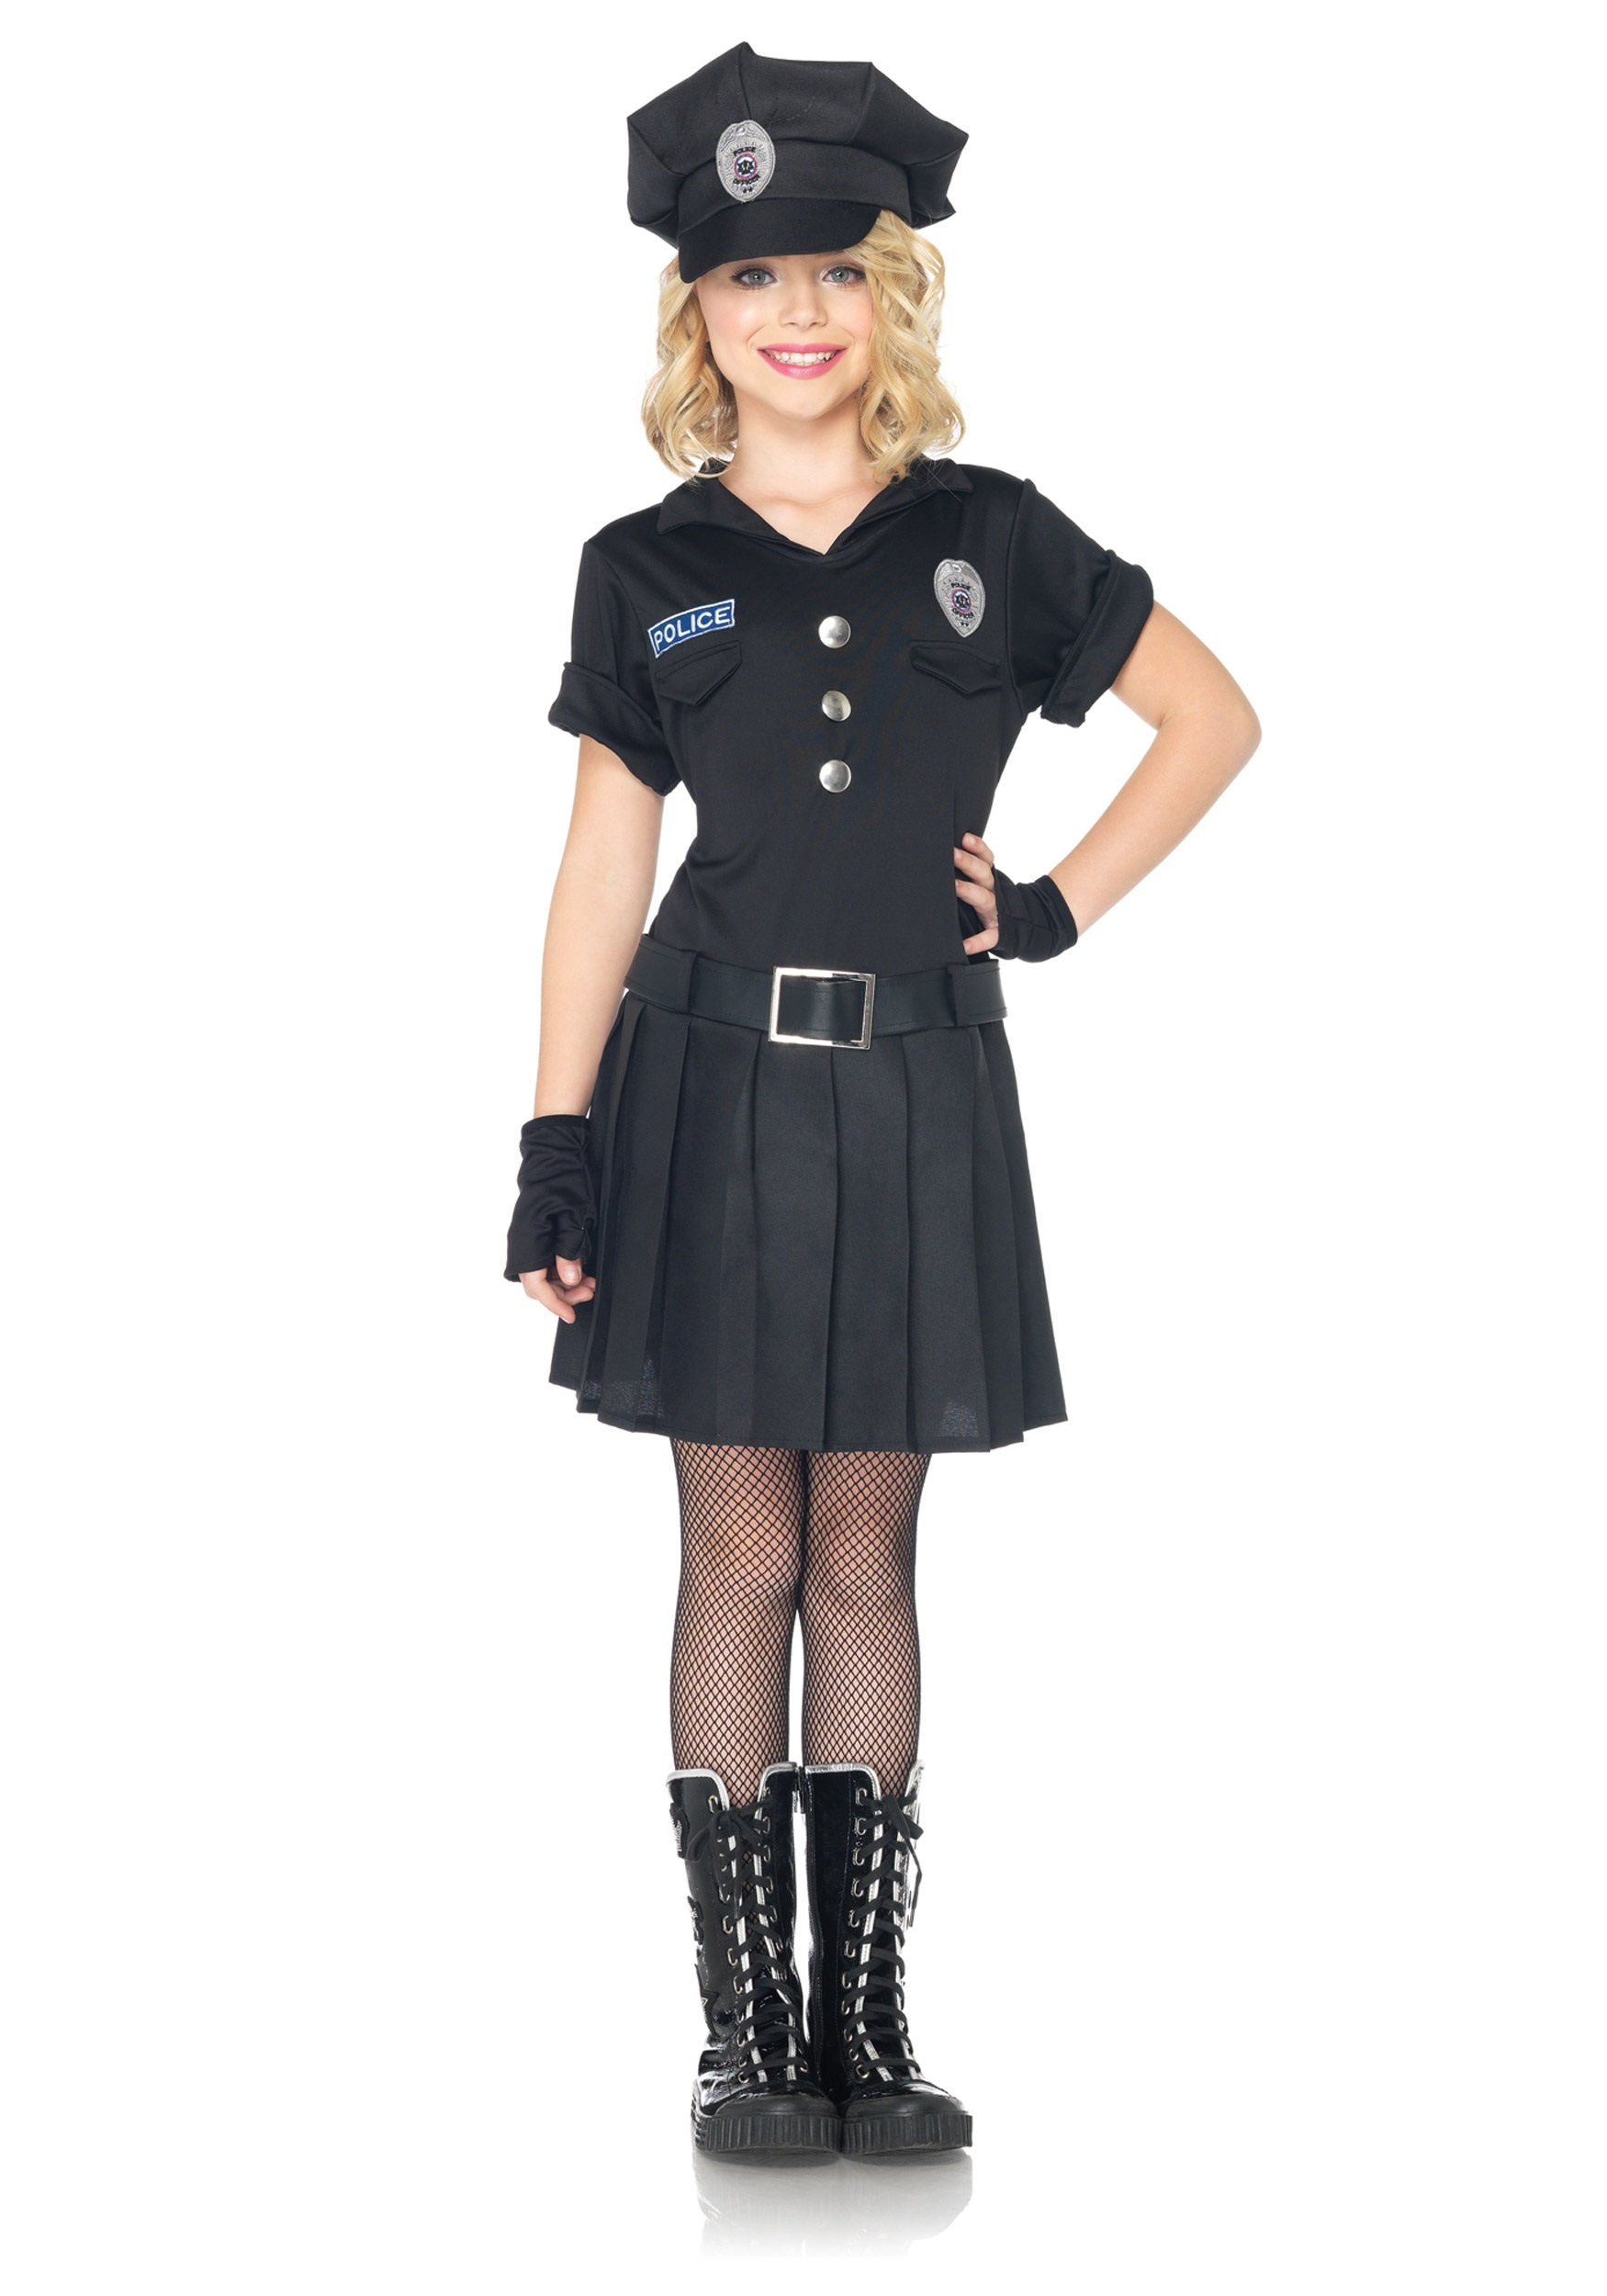 Girls playtime police costume solutioingenieria Images